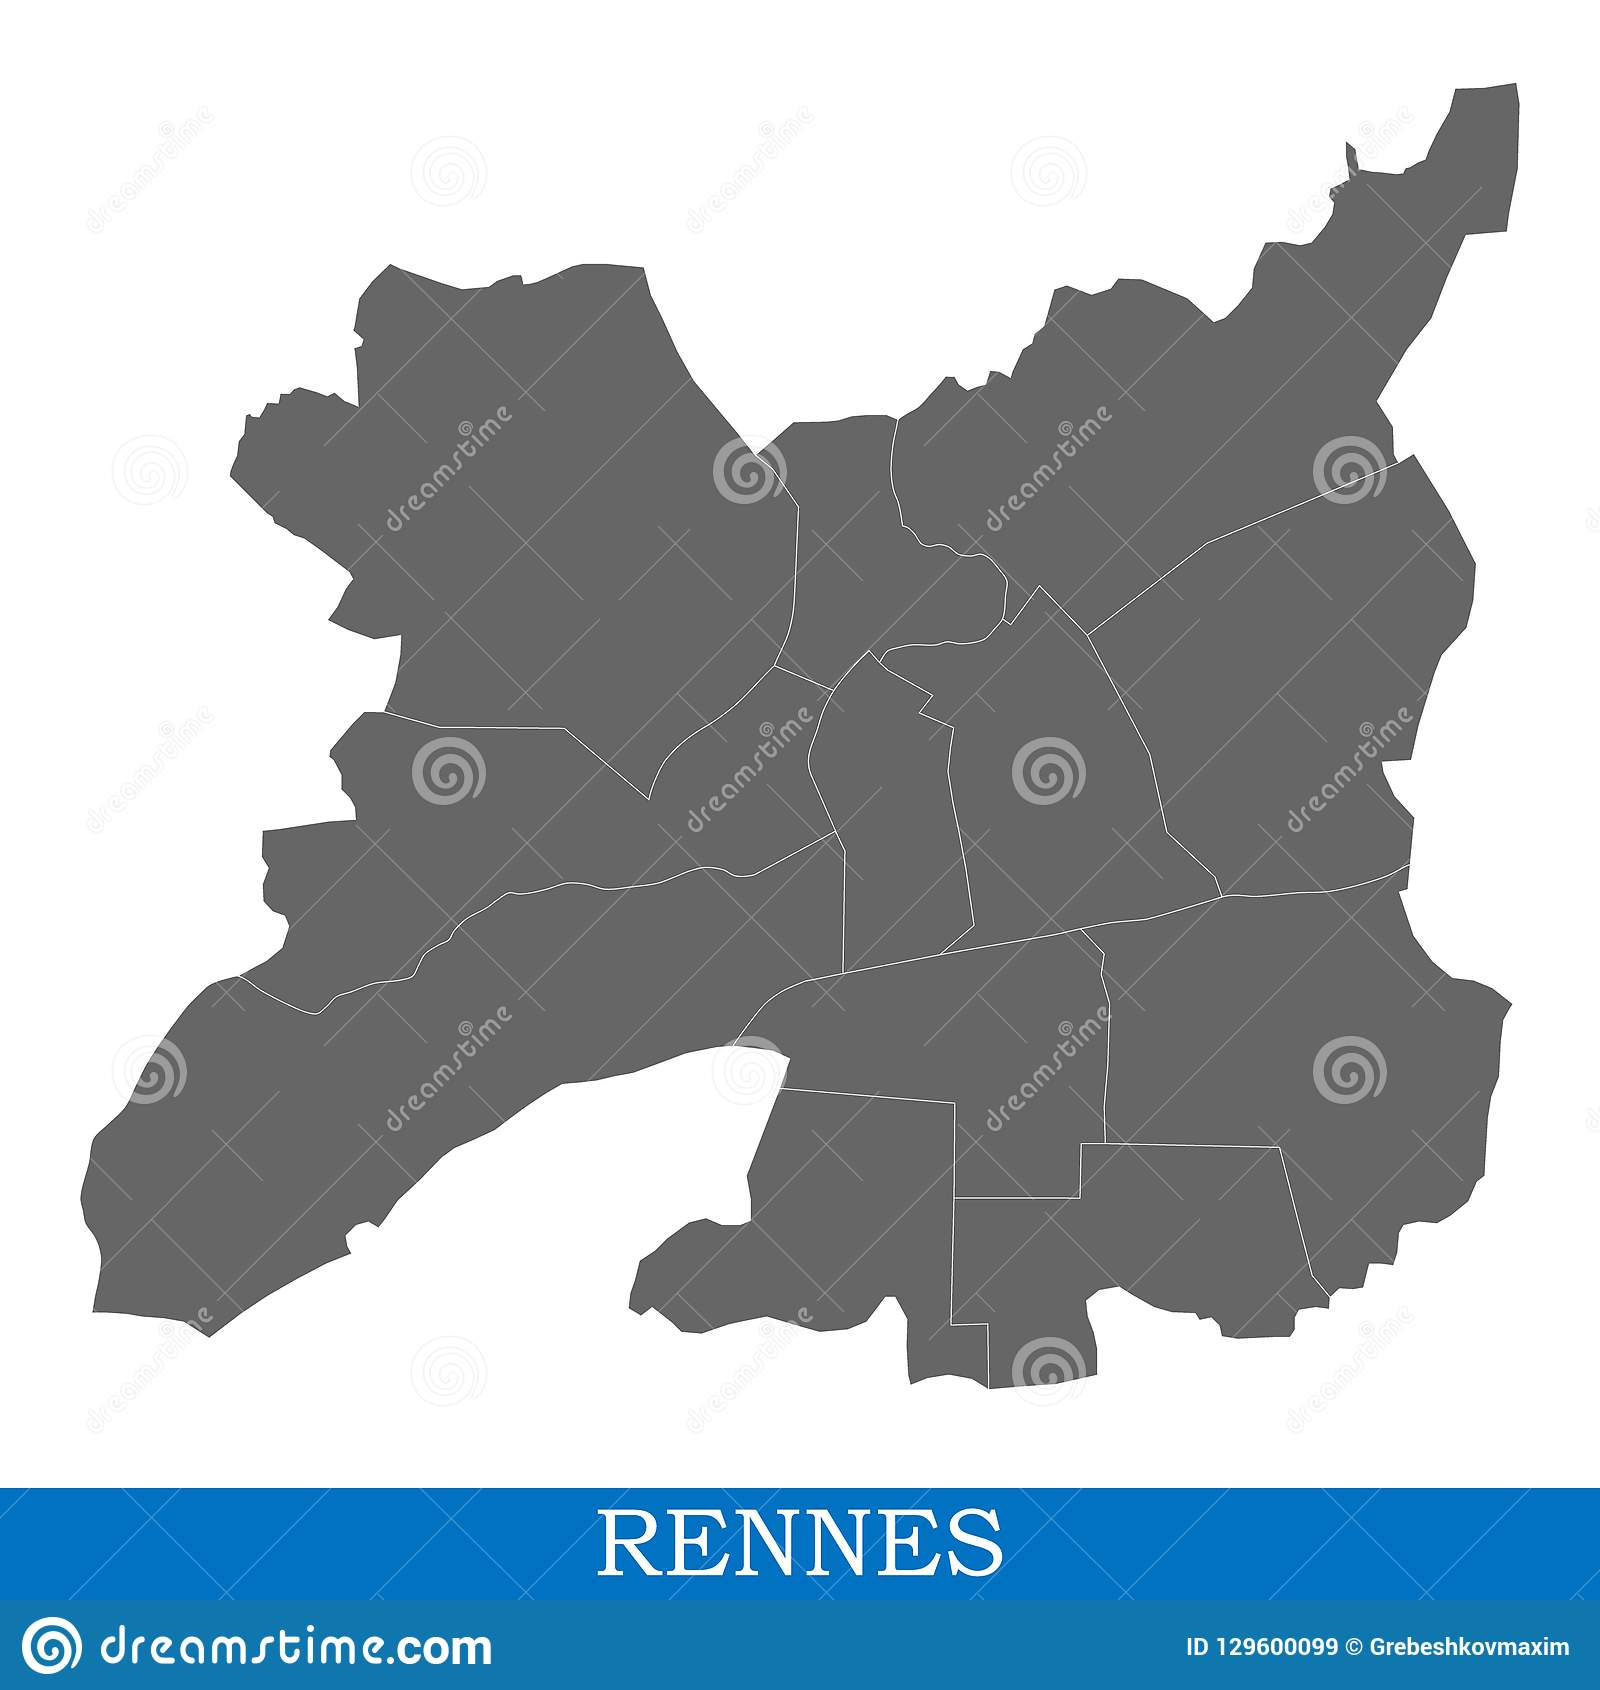 Rennes Map Of France.High Quality Map City Of France Stock Illustration Illustration Of